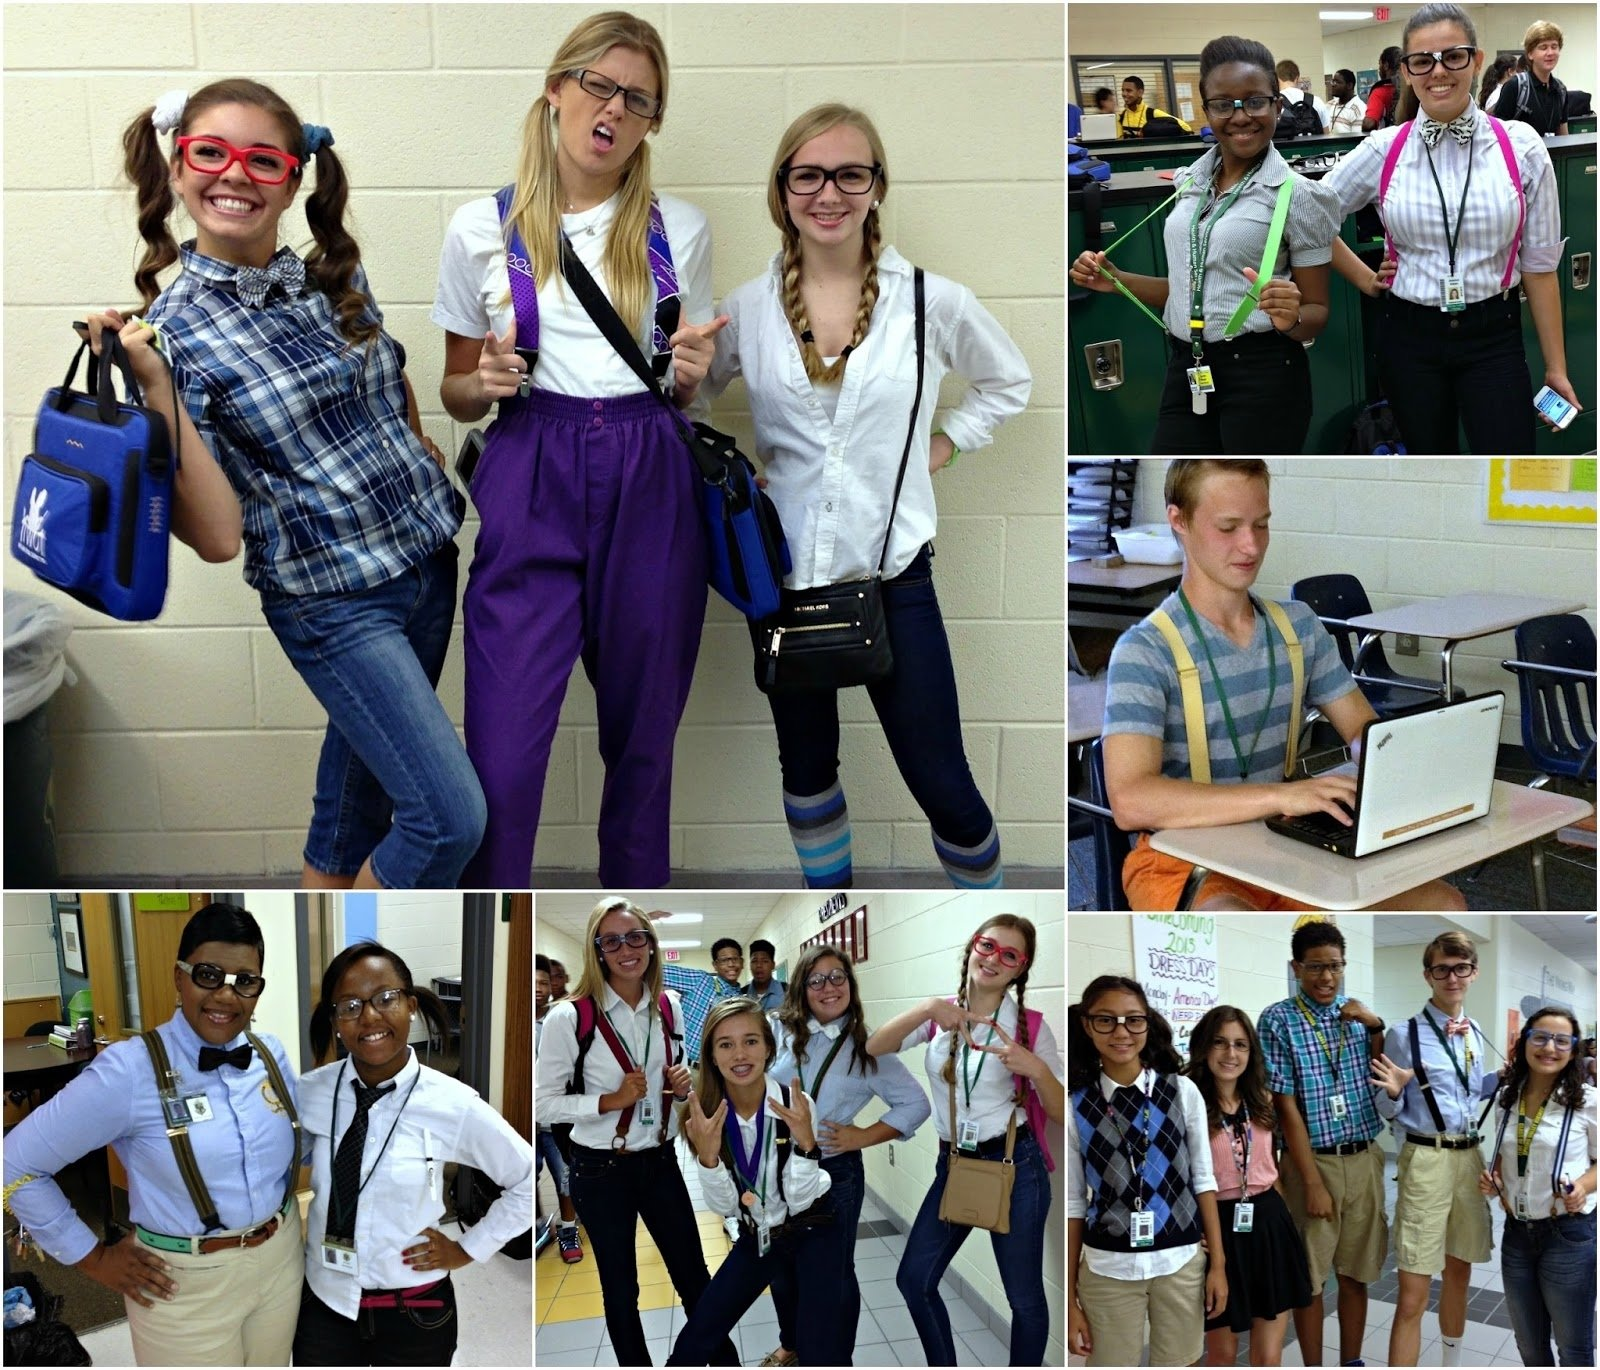 10 Cute Character Day Ideas For Girls viking update homecoming 2013 nerd day 2020